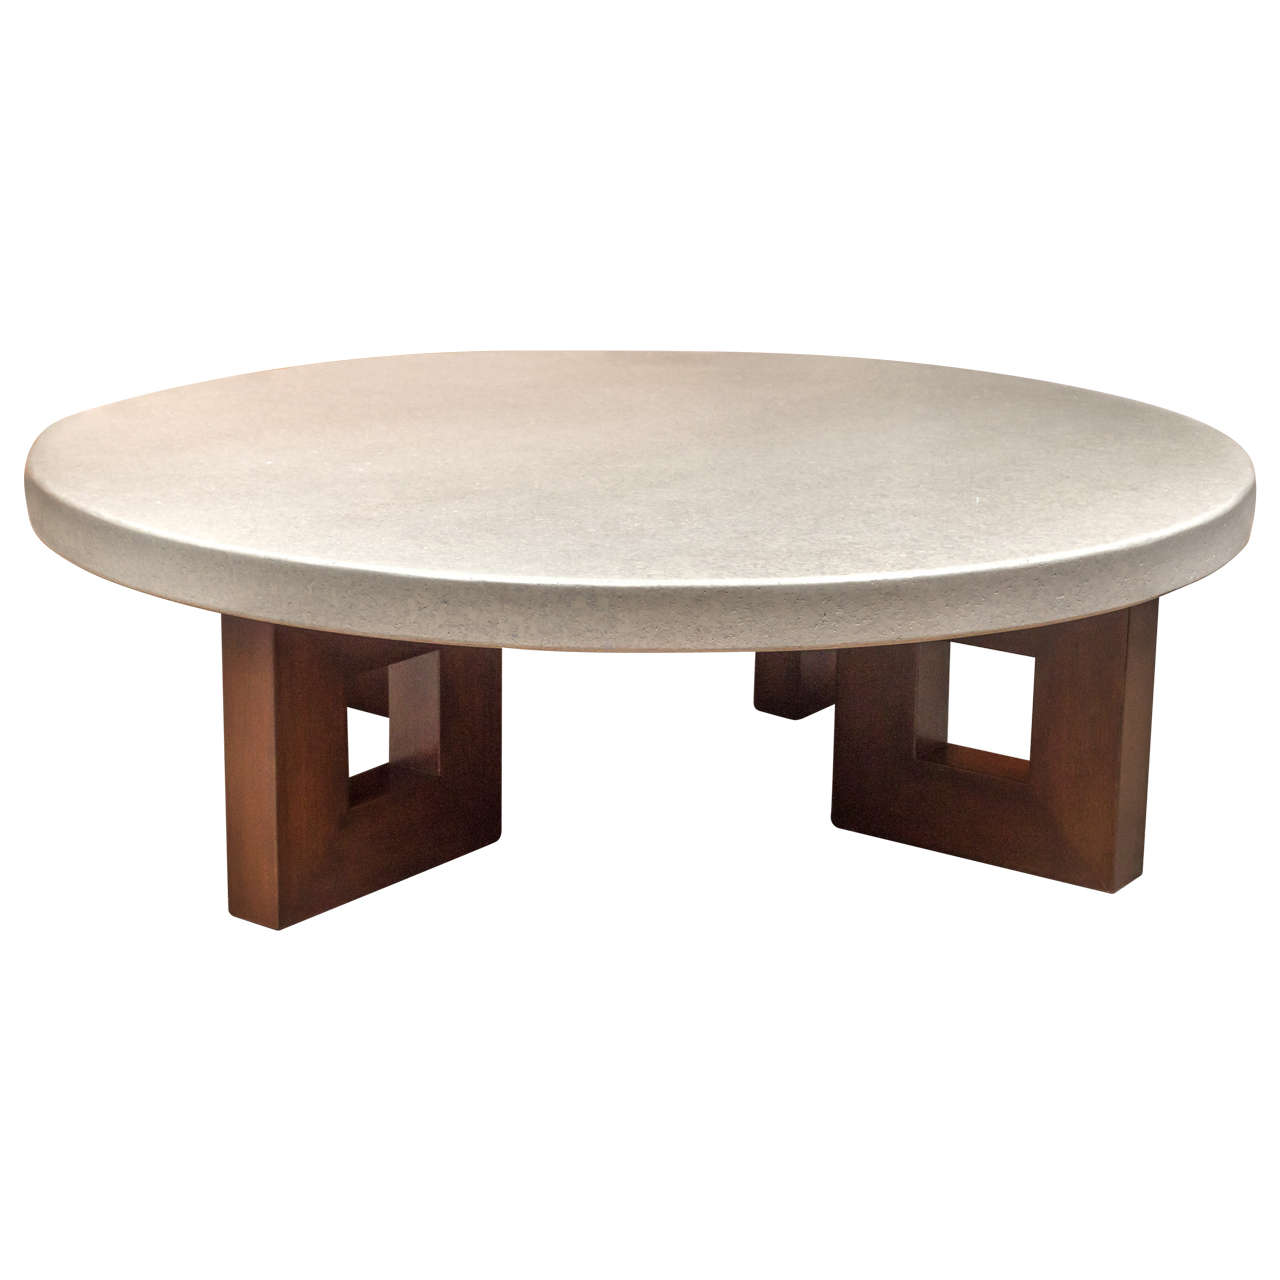 paul frankl cork coffee table for sale at 1stdibs